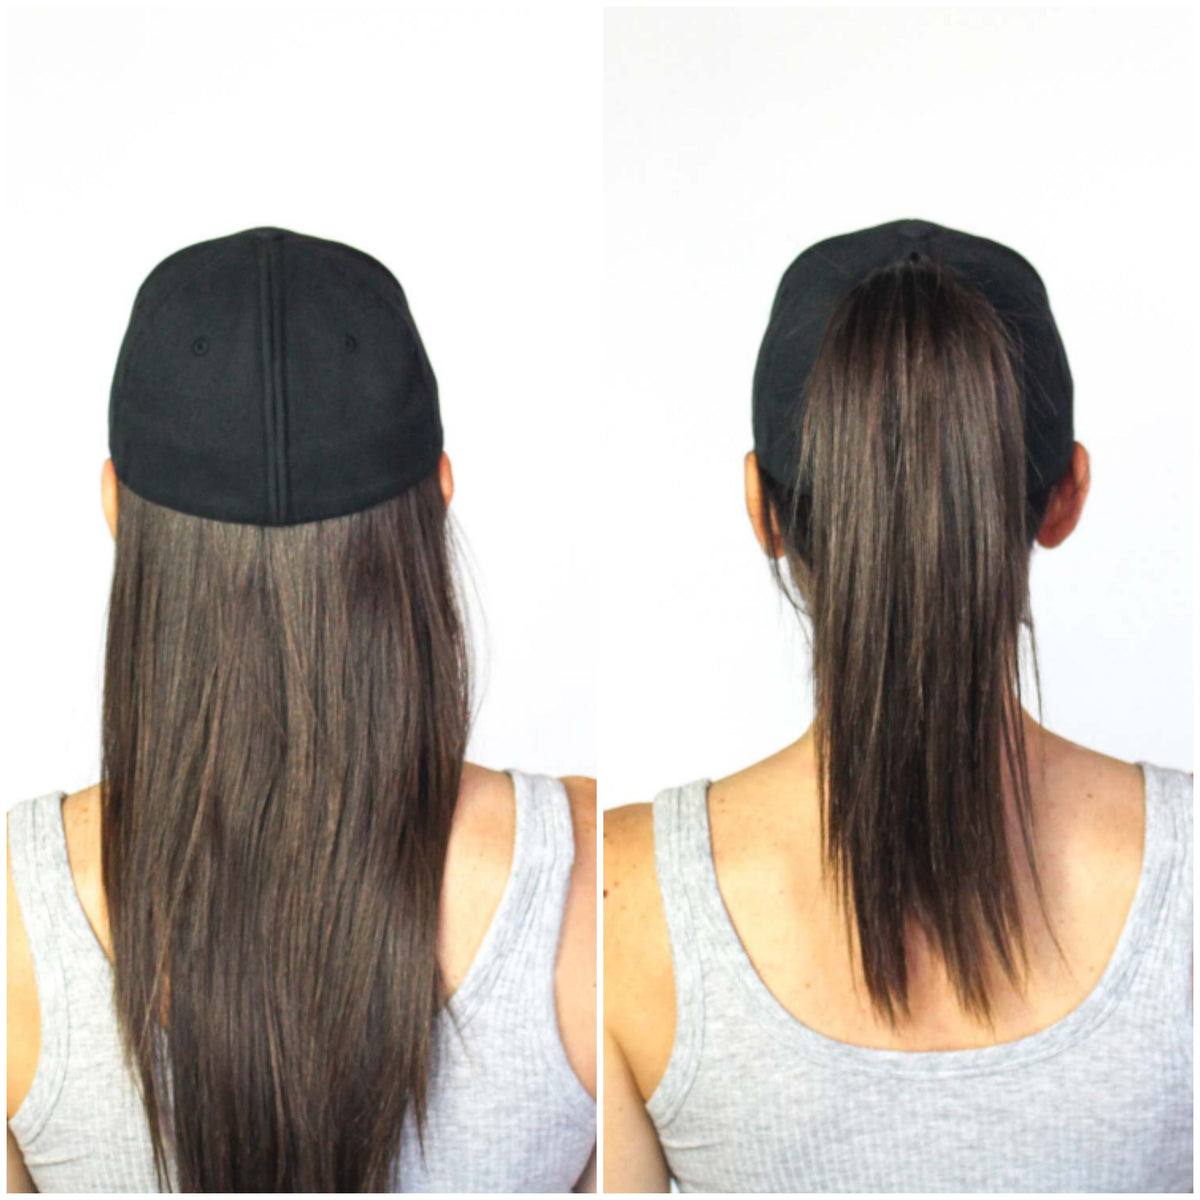 Back view of a women wearing a black ponytail hat with her hair down and the same women in an image beside wearing a black ponytail hat with a ponytail pulled through an opening along the back seam of the ponytail hat.